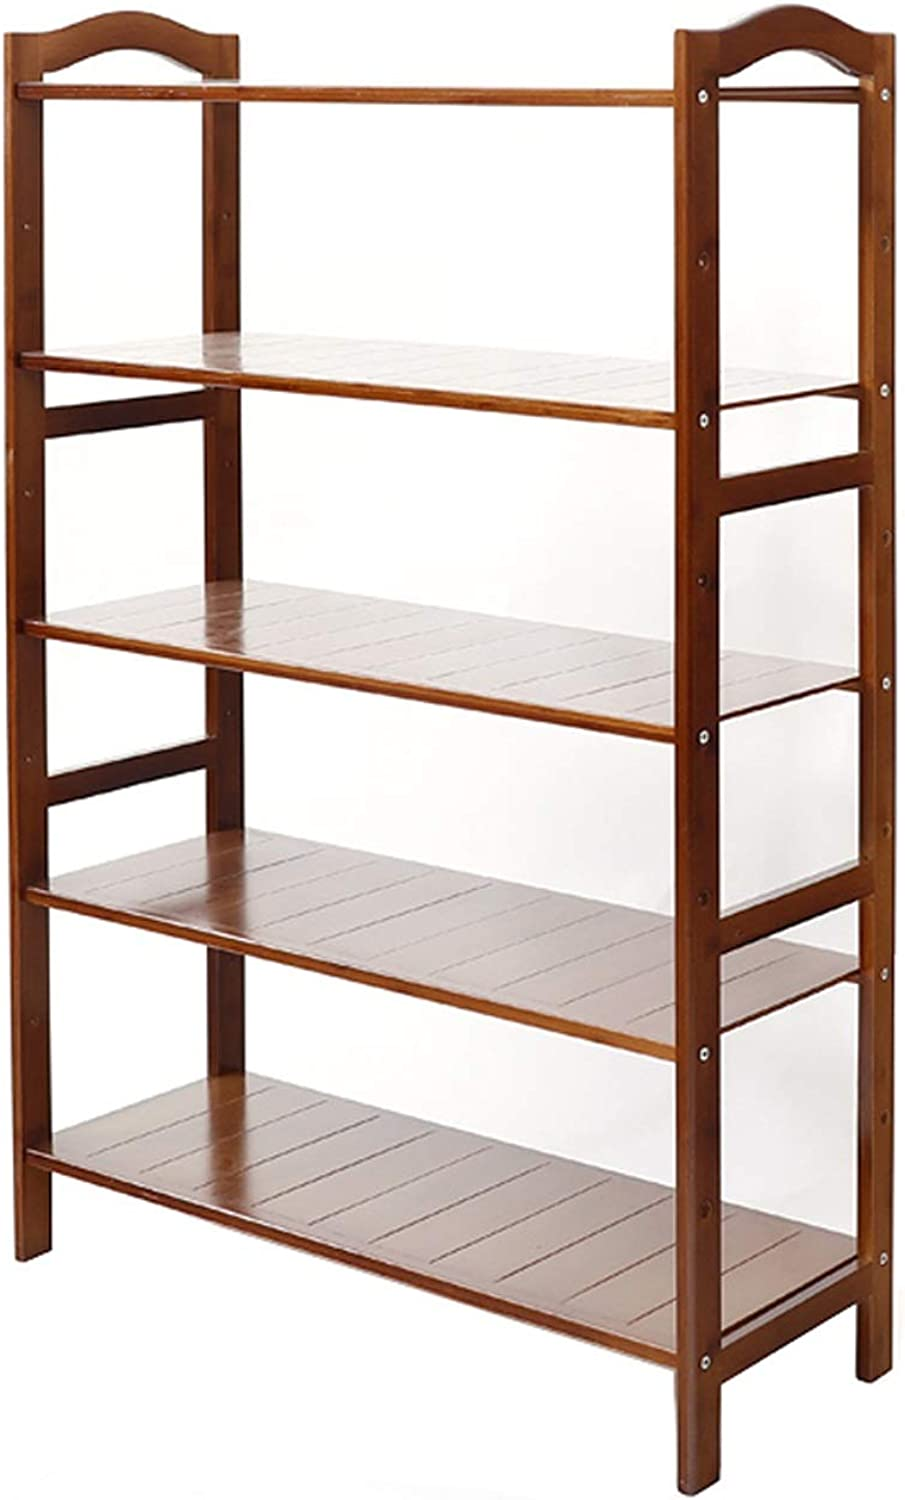 DR shoes Rack Bamboo shoes Rack - 3 4 5 Layer Arc Handle Simple Inssizetion Environmental Predection Material Dust Simple shoes Rack Storage Shelf (Size   69x26x102cm)